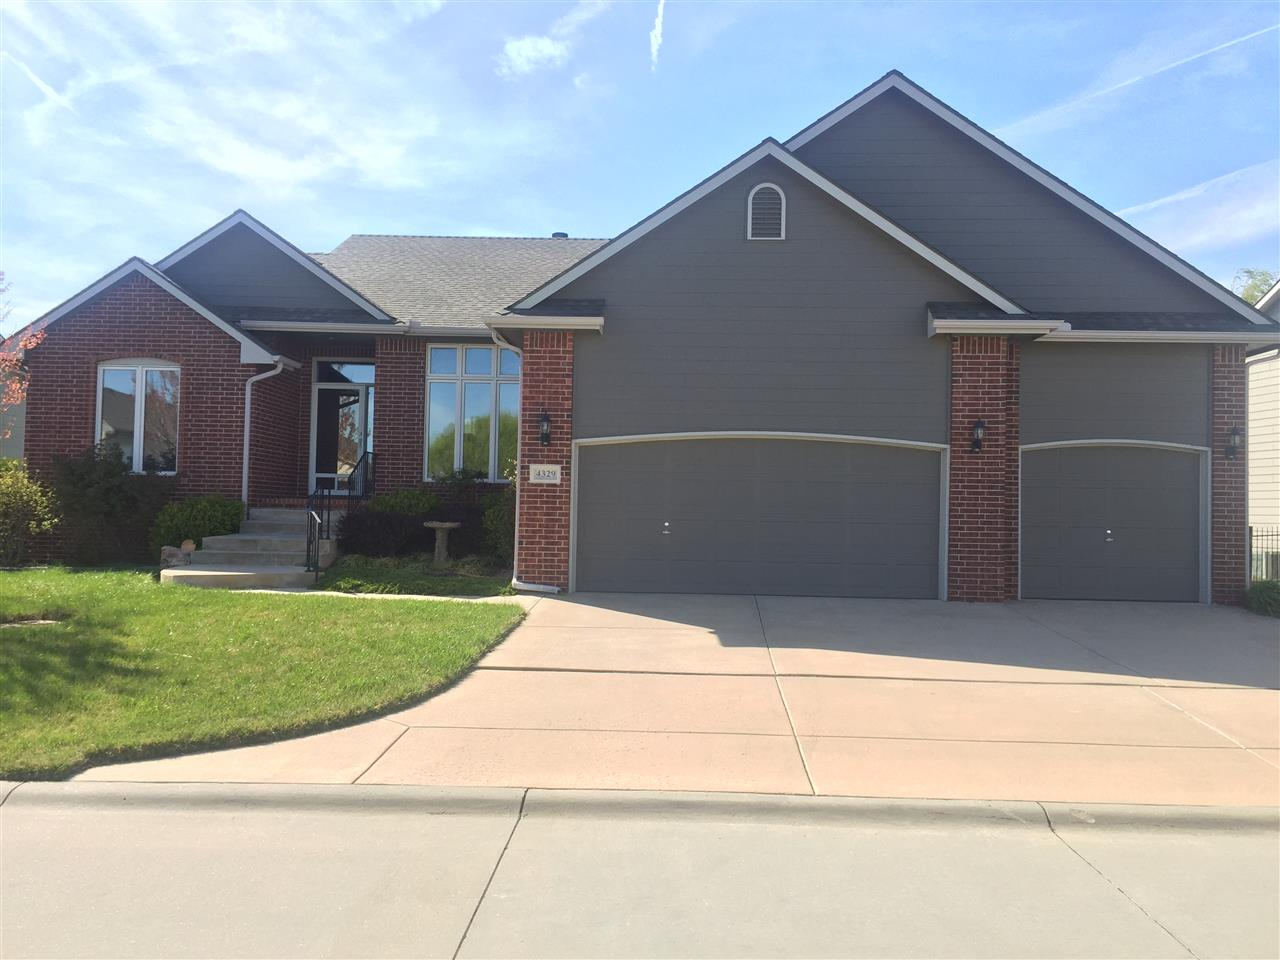 4329 N CHERRY HILL, Wichita, KS 67226